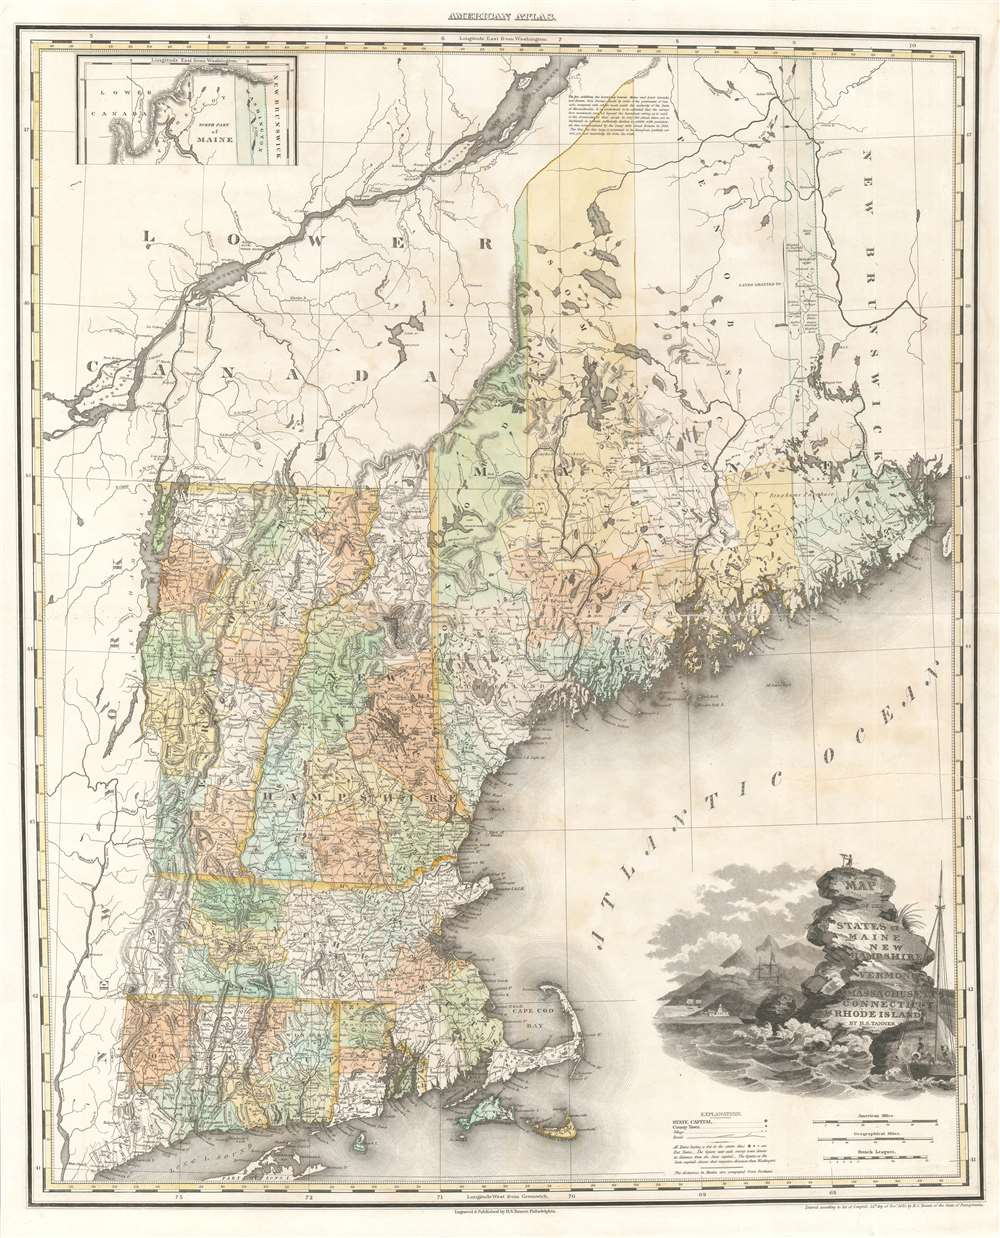 Map of the States of Maine New Hampshire Vermont Massachusetts Connecticut and Rhode Island. - Main View